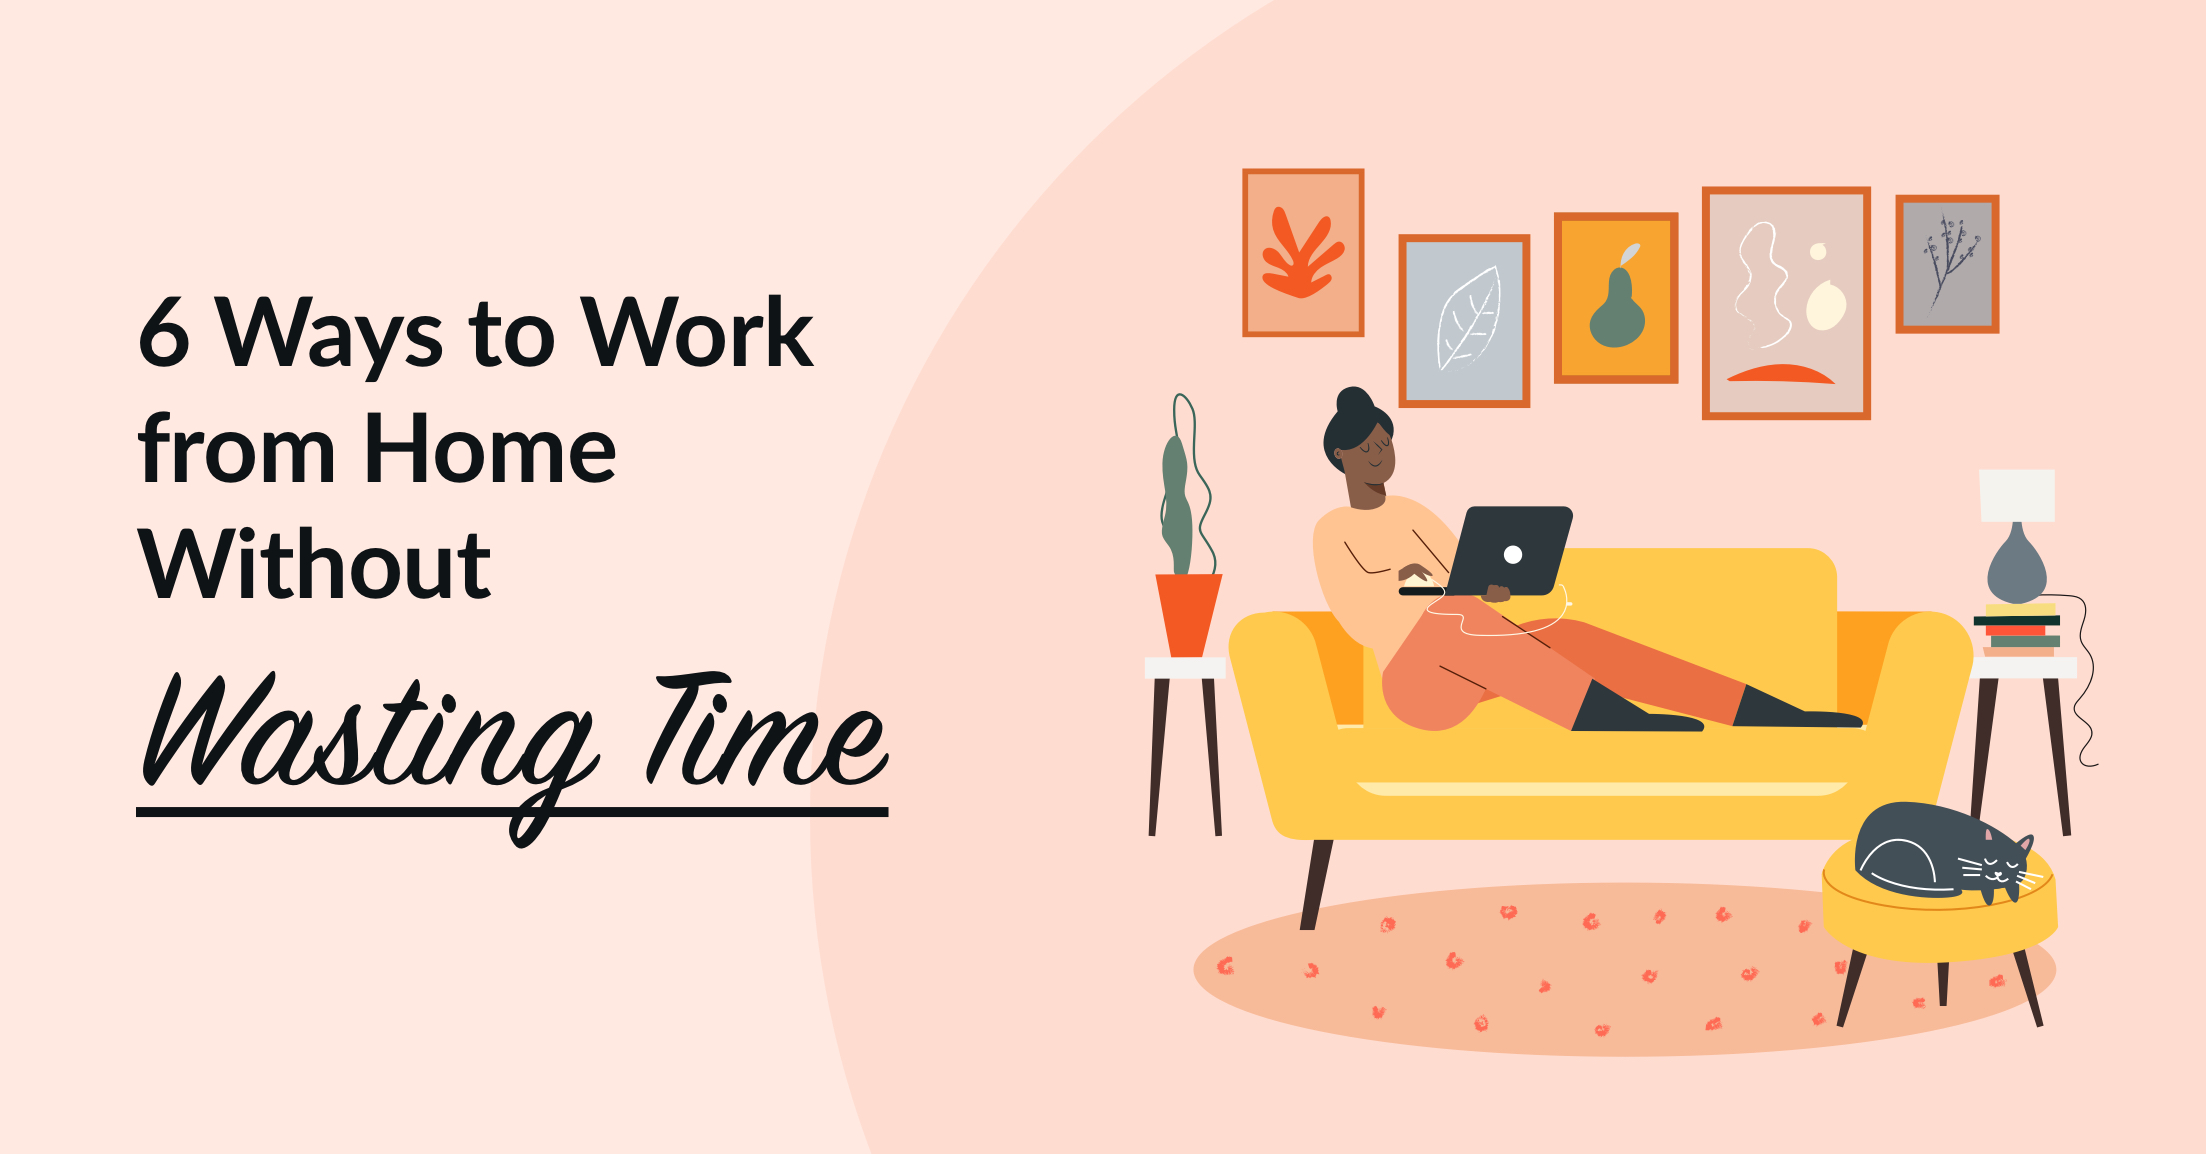 6 Ways to Work from Home Without Wasting Time